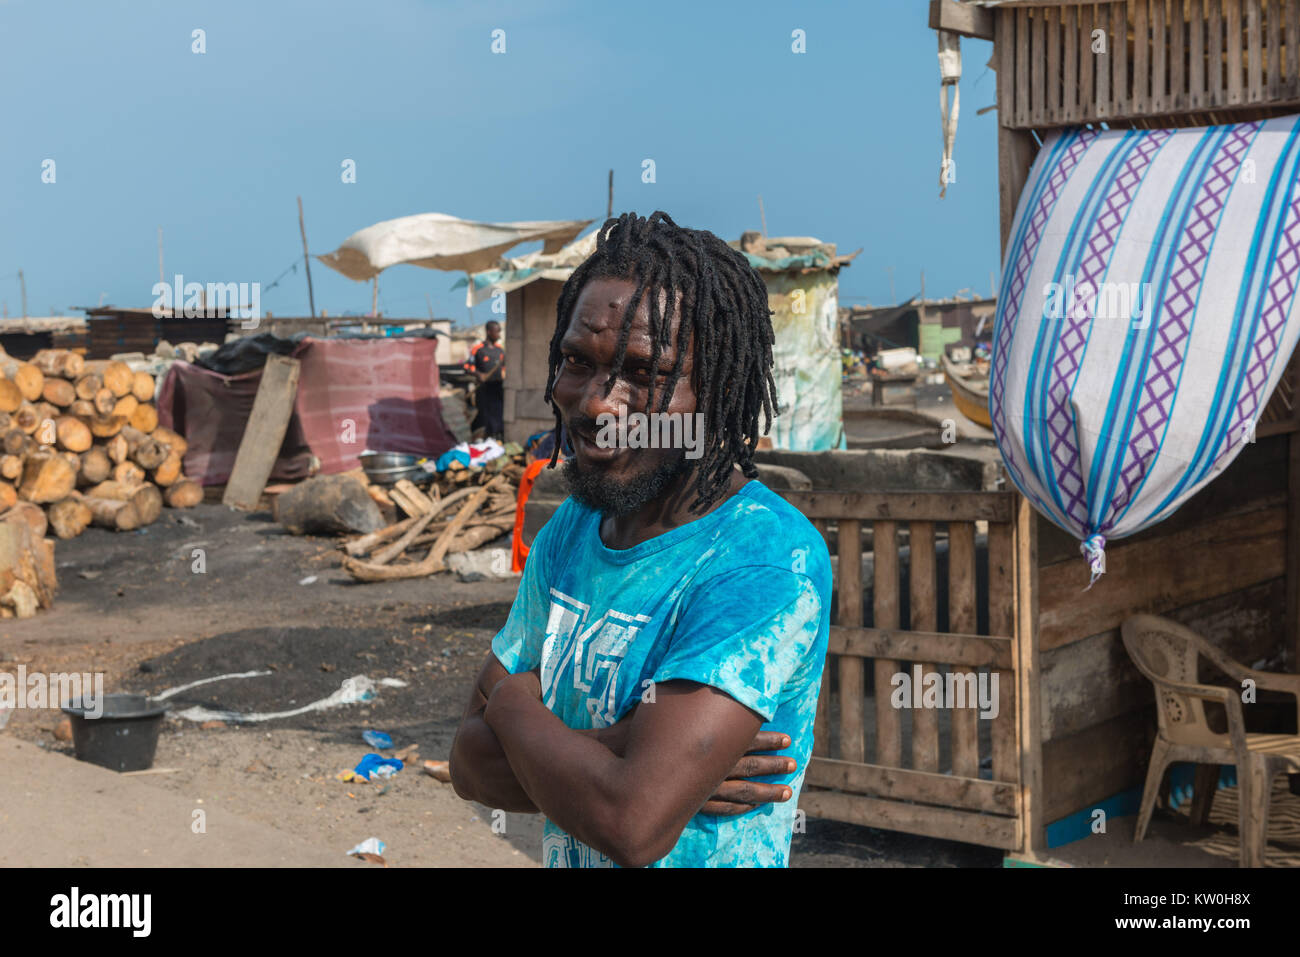 A tourist guide to Jamestown Fishing Village, Jamestown, Accra, Ghana - Stock Image